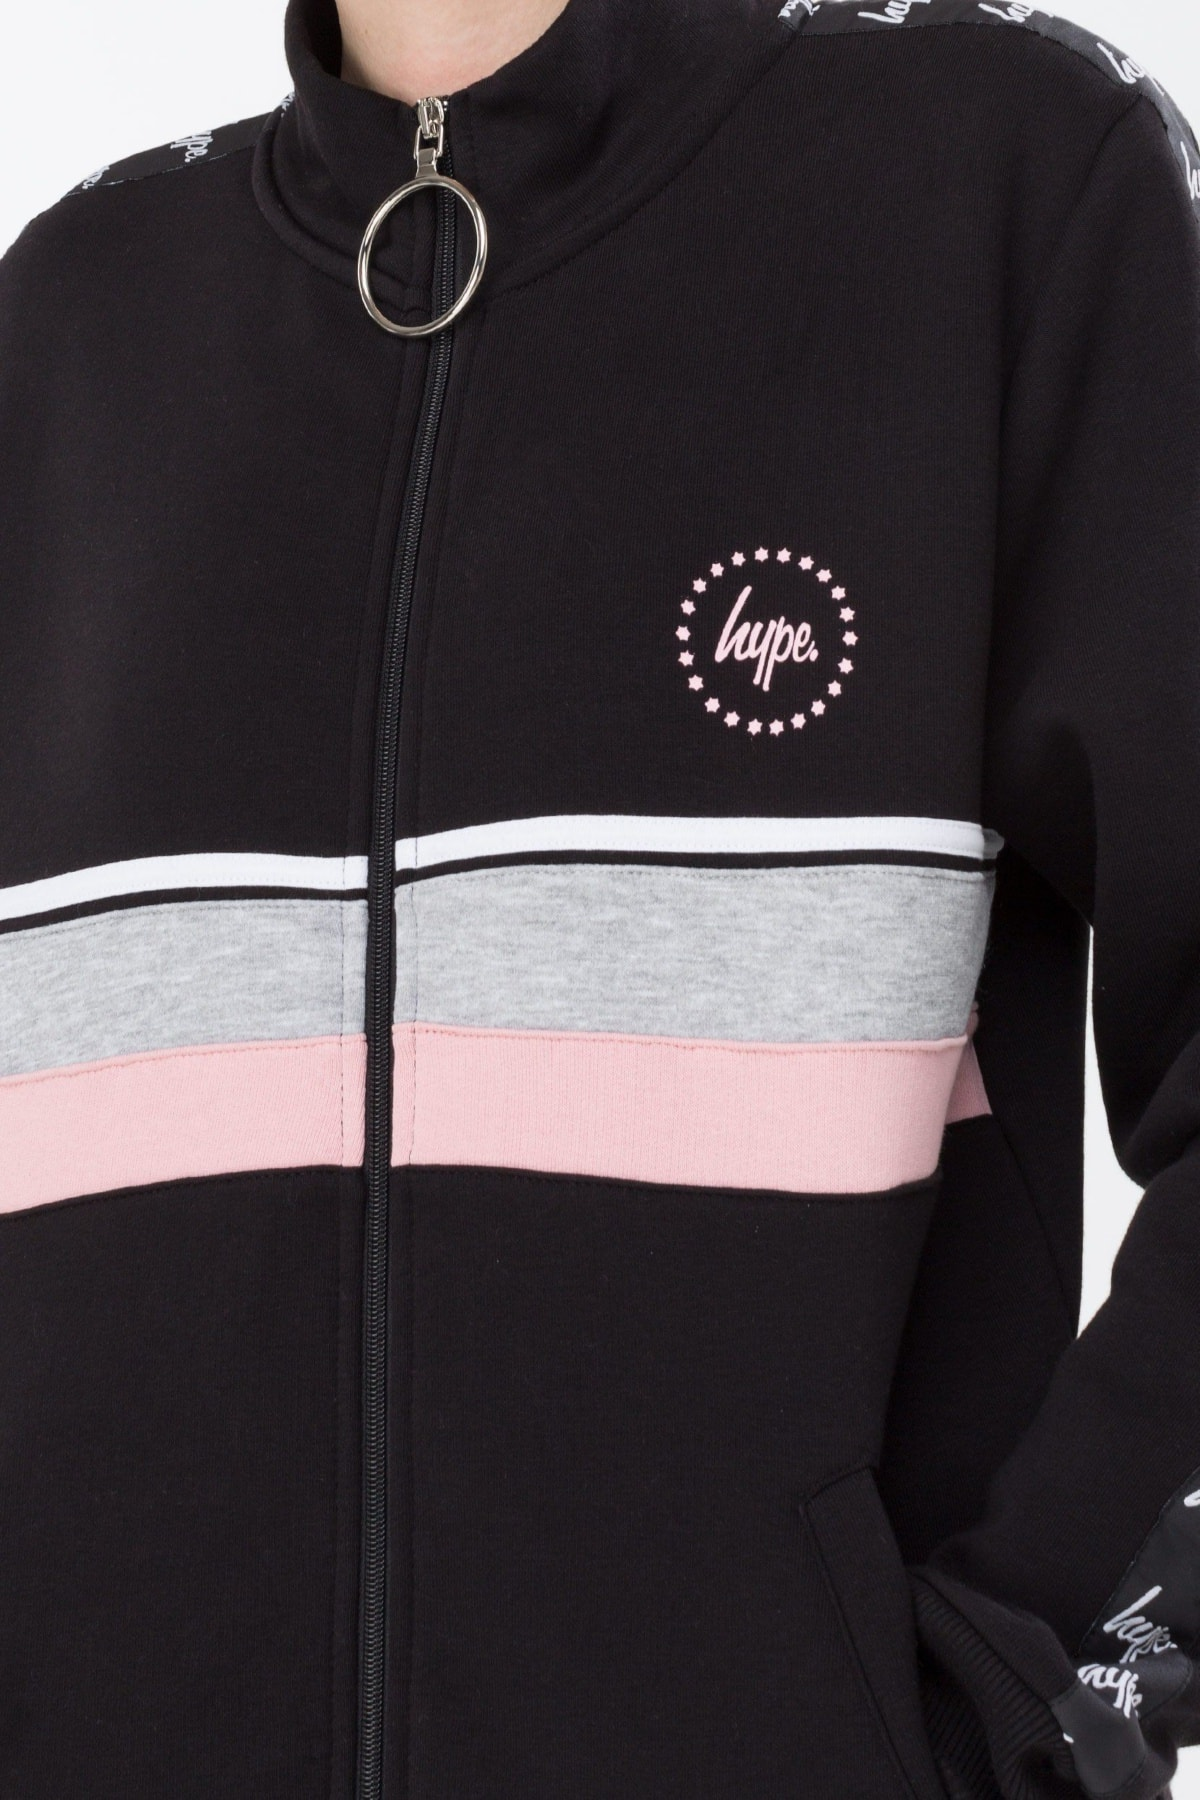 HYPE Black/Grey/Pink Taping Women's Track Jacket